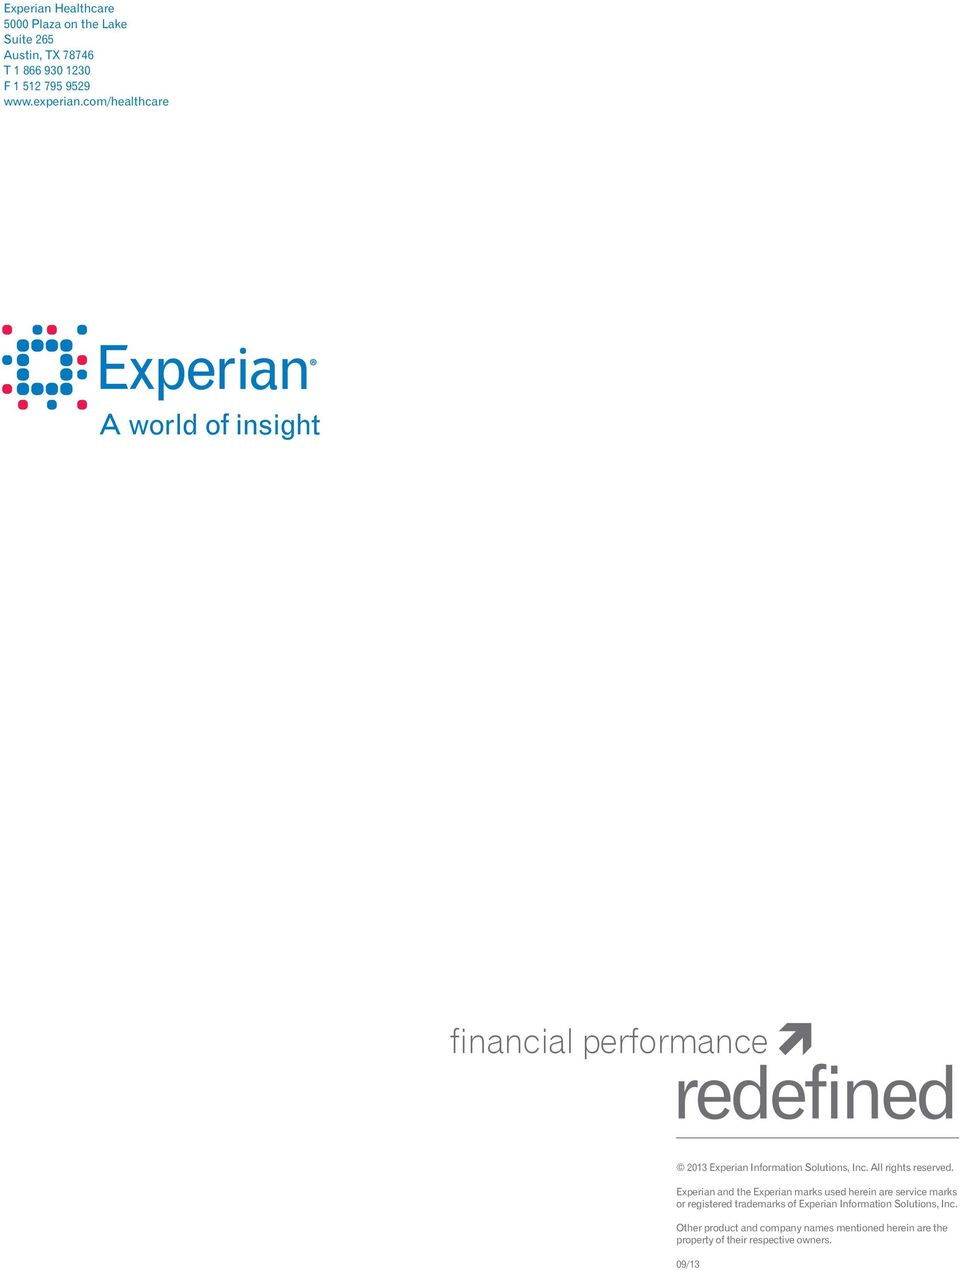 Experian and the Experian marks used herein are service marks or registered trademarks of Experian Information